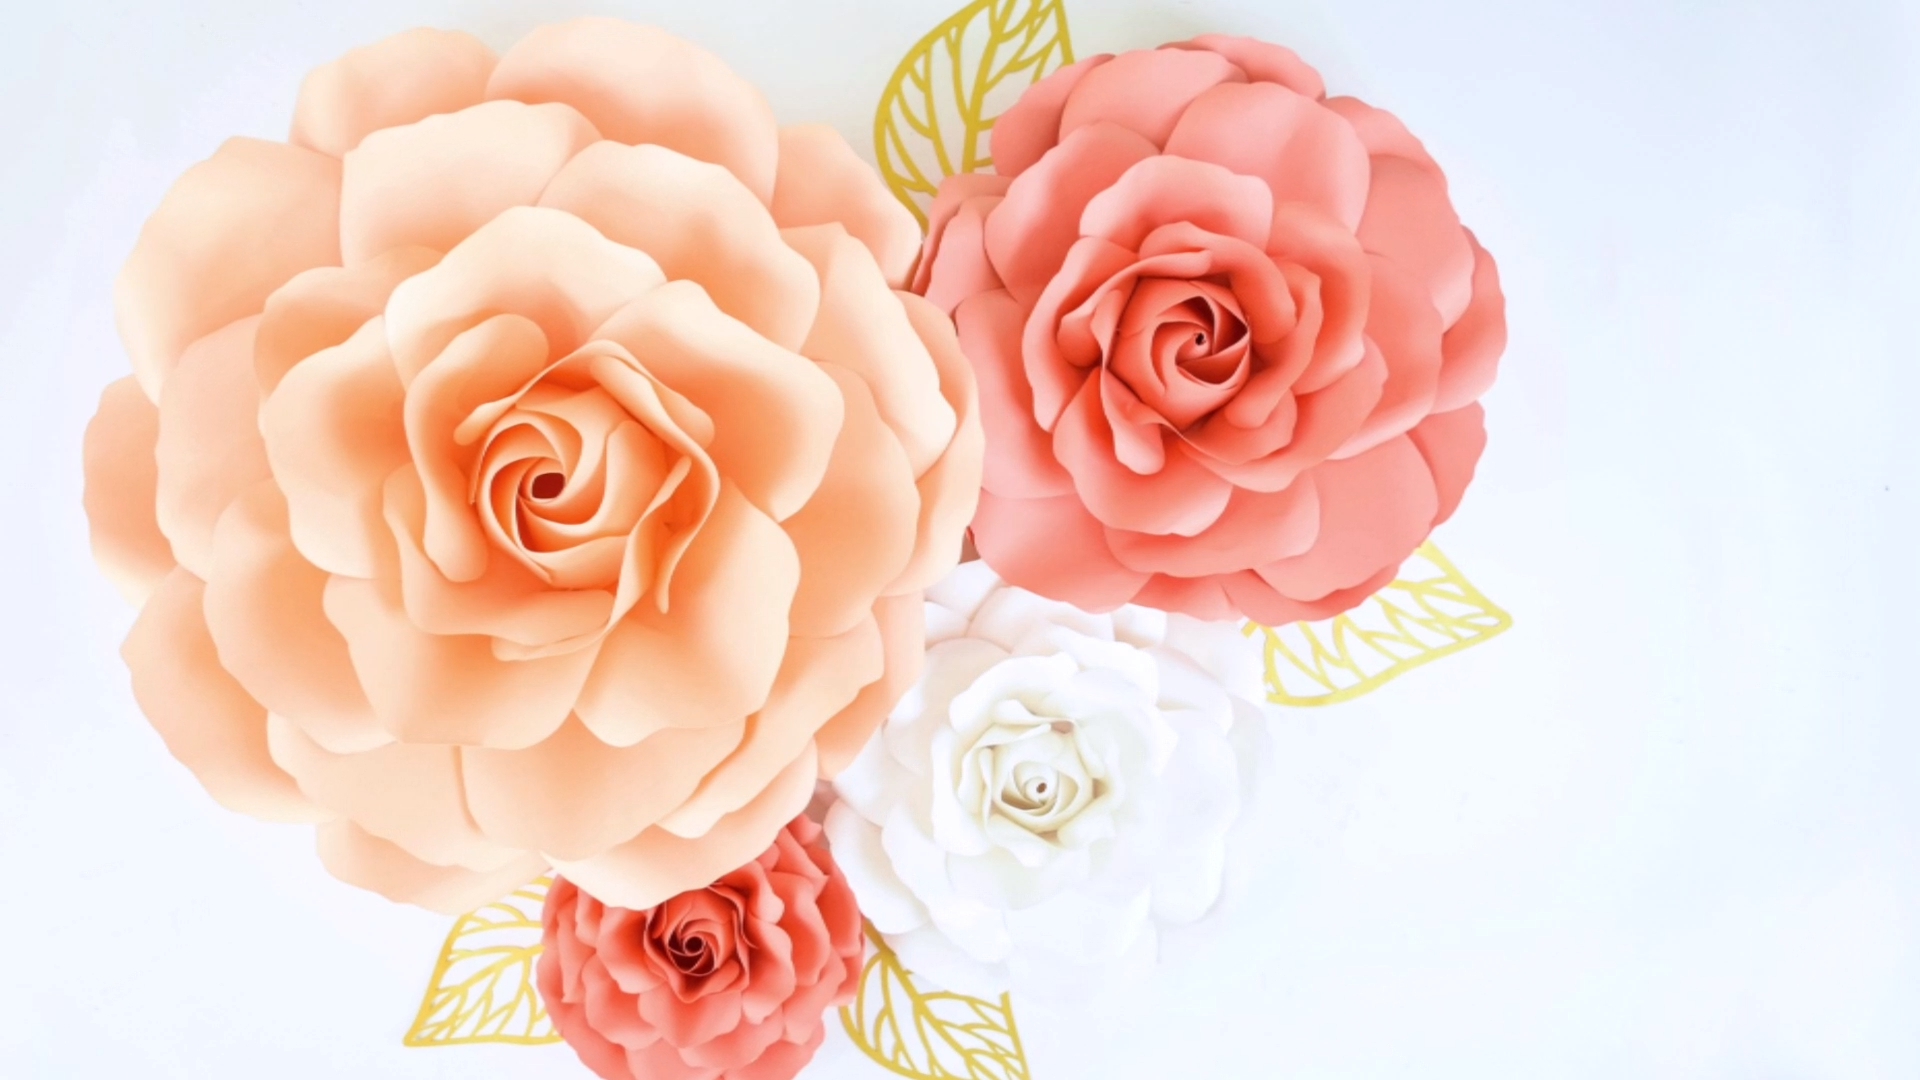 DIY Giant Paper Roses #giantpaperflowers